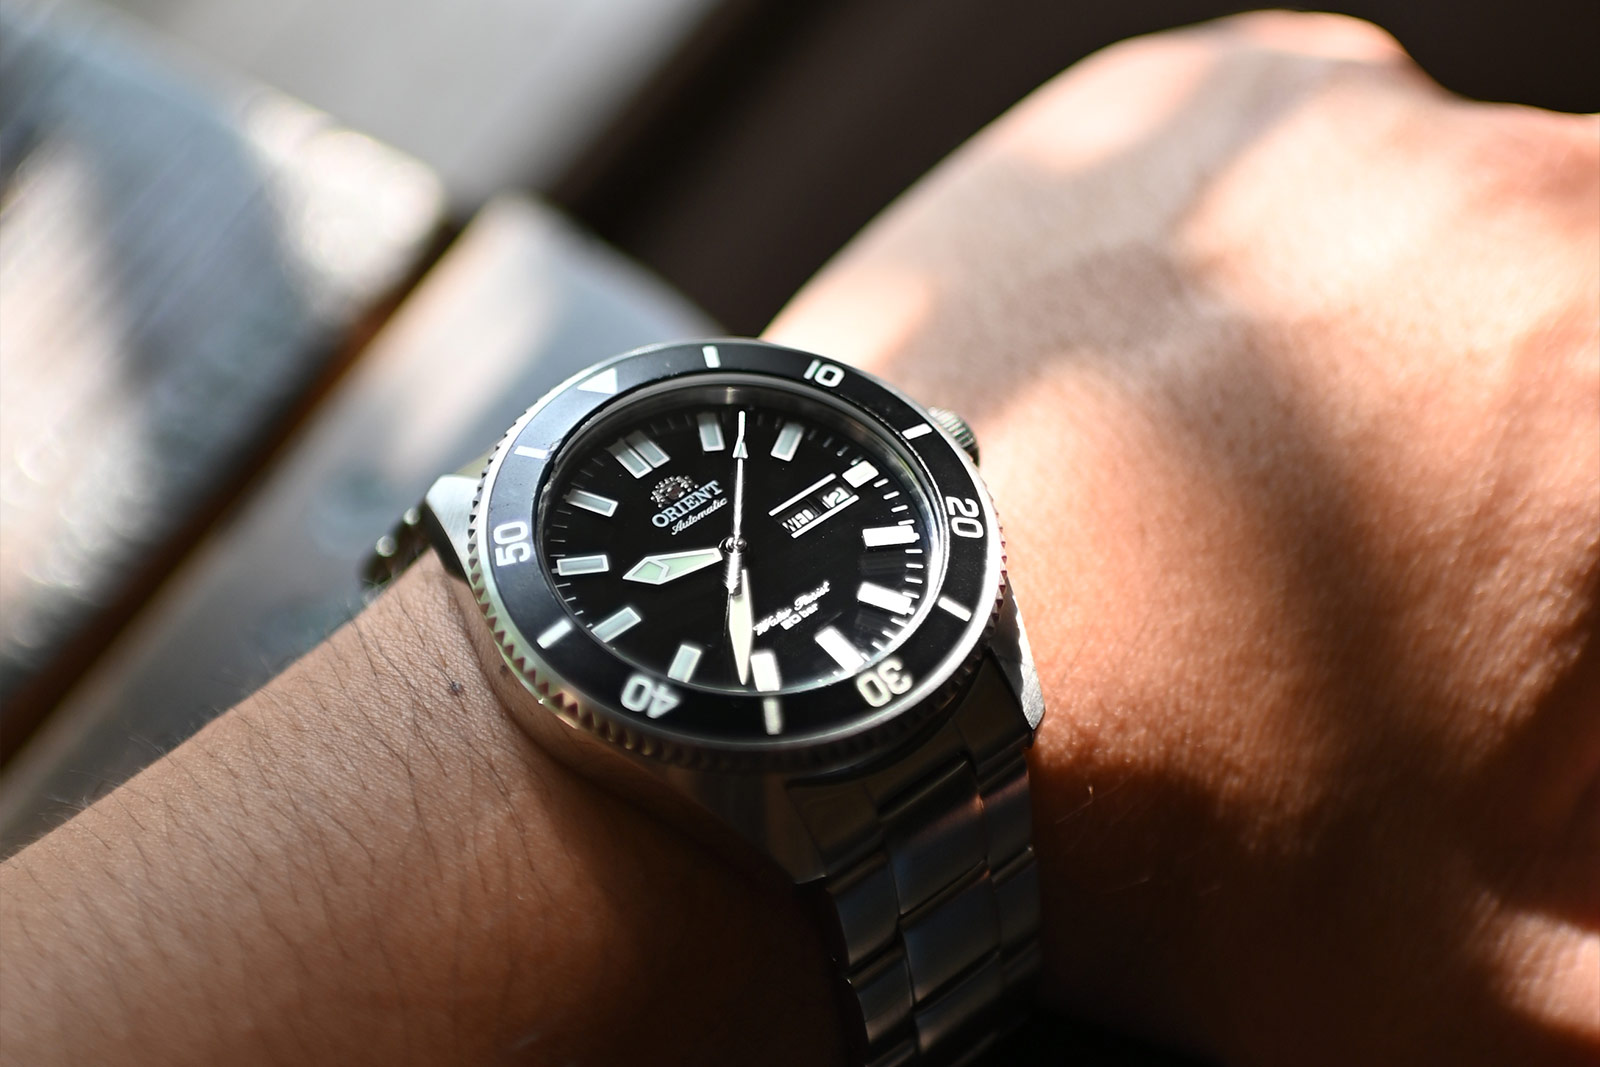 Orient RA-AA0008B Mako III Automatic Divers Black Dial Stainless Steel Machtwatch